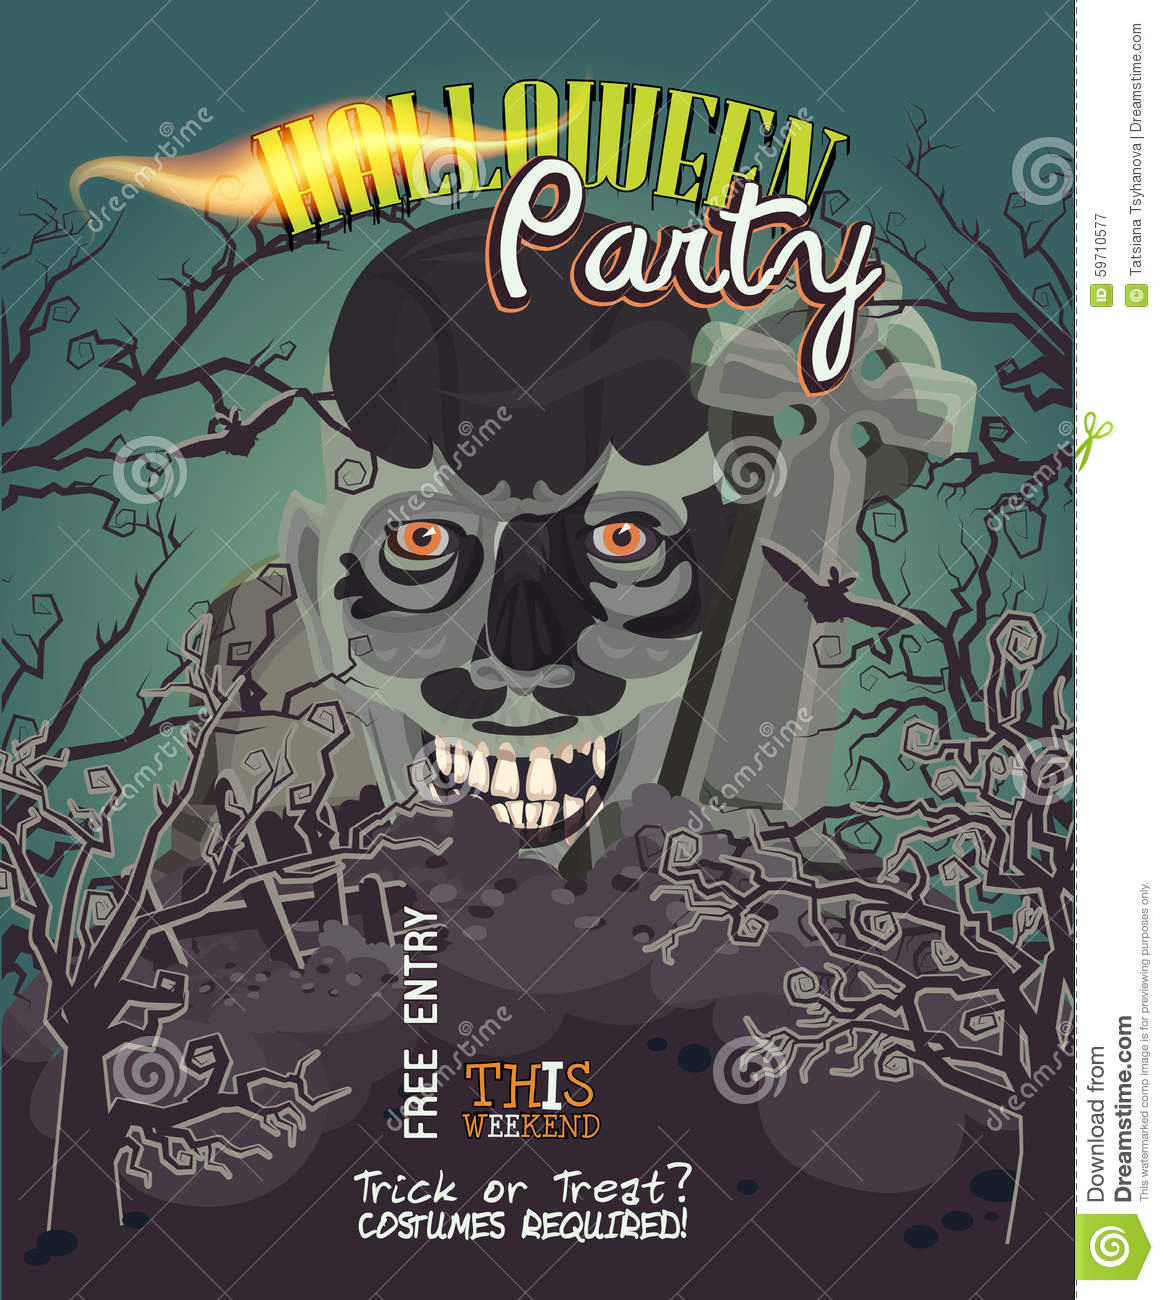 Halloween Party Vector Invitation Card With Zombie Stock